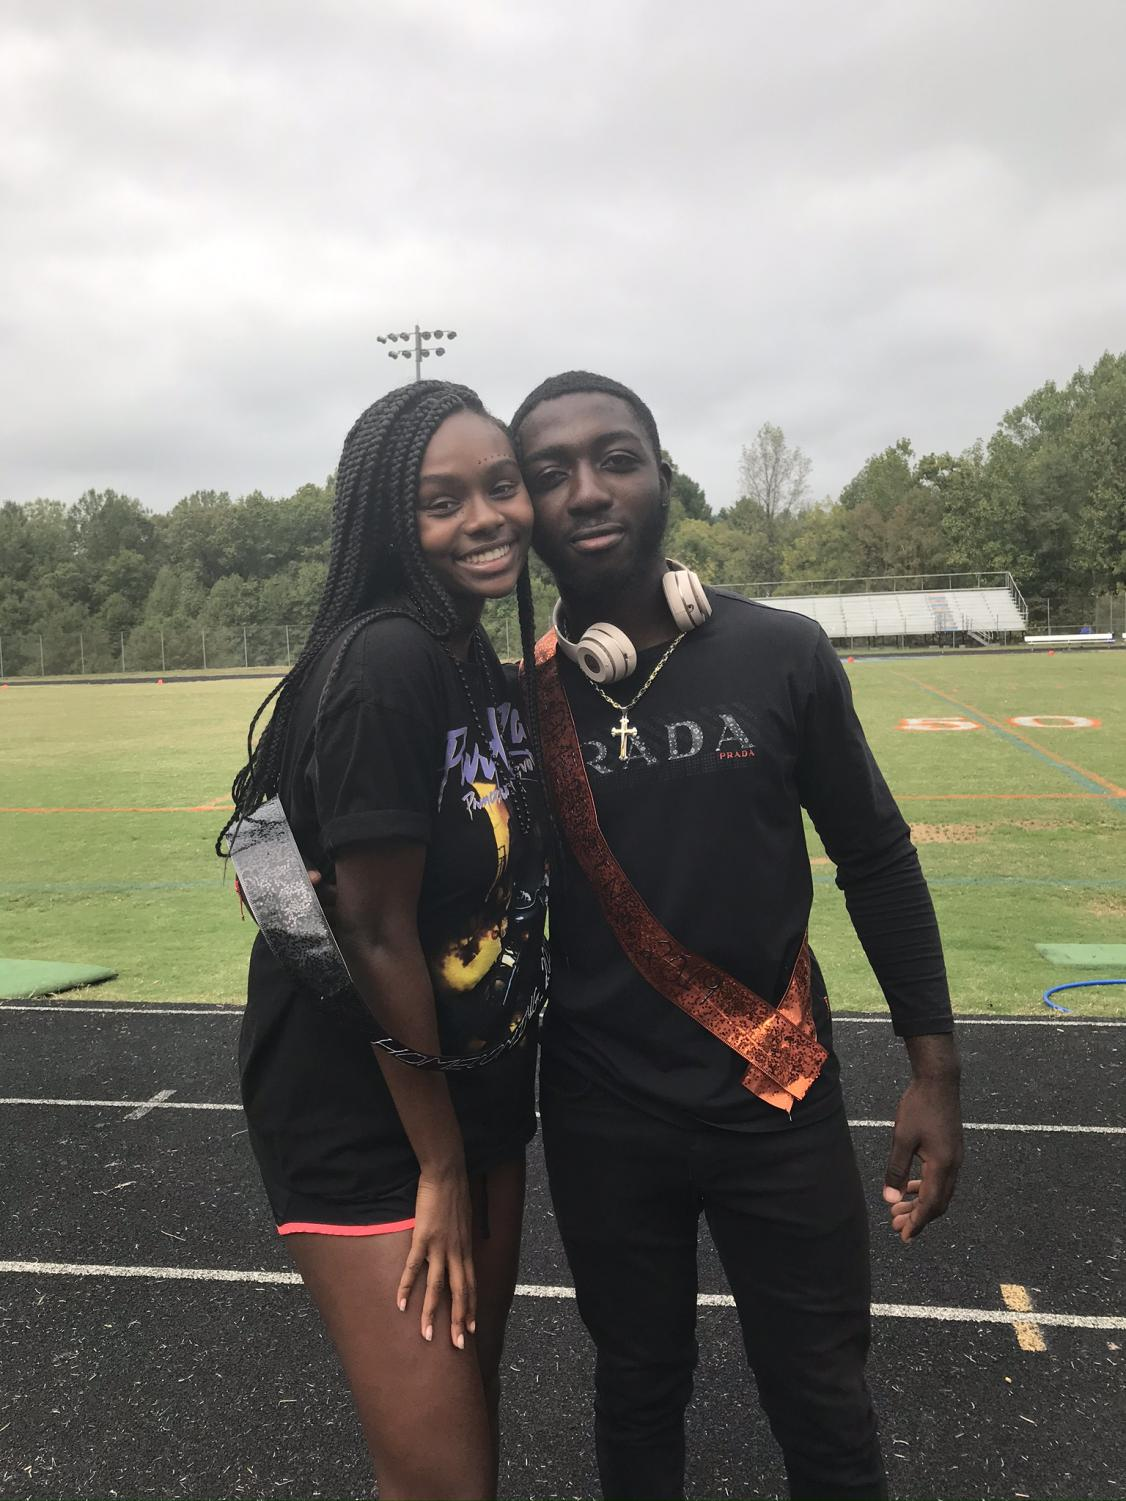 Seniors Isis Barnes and Victor Kum are nominated for Homecoming King and queen.